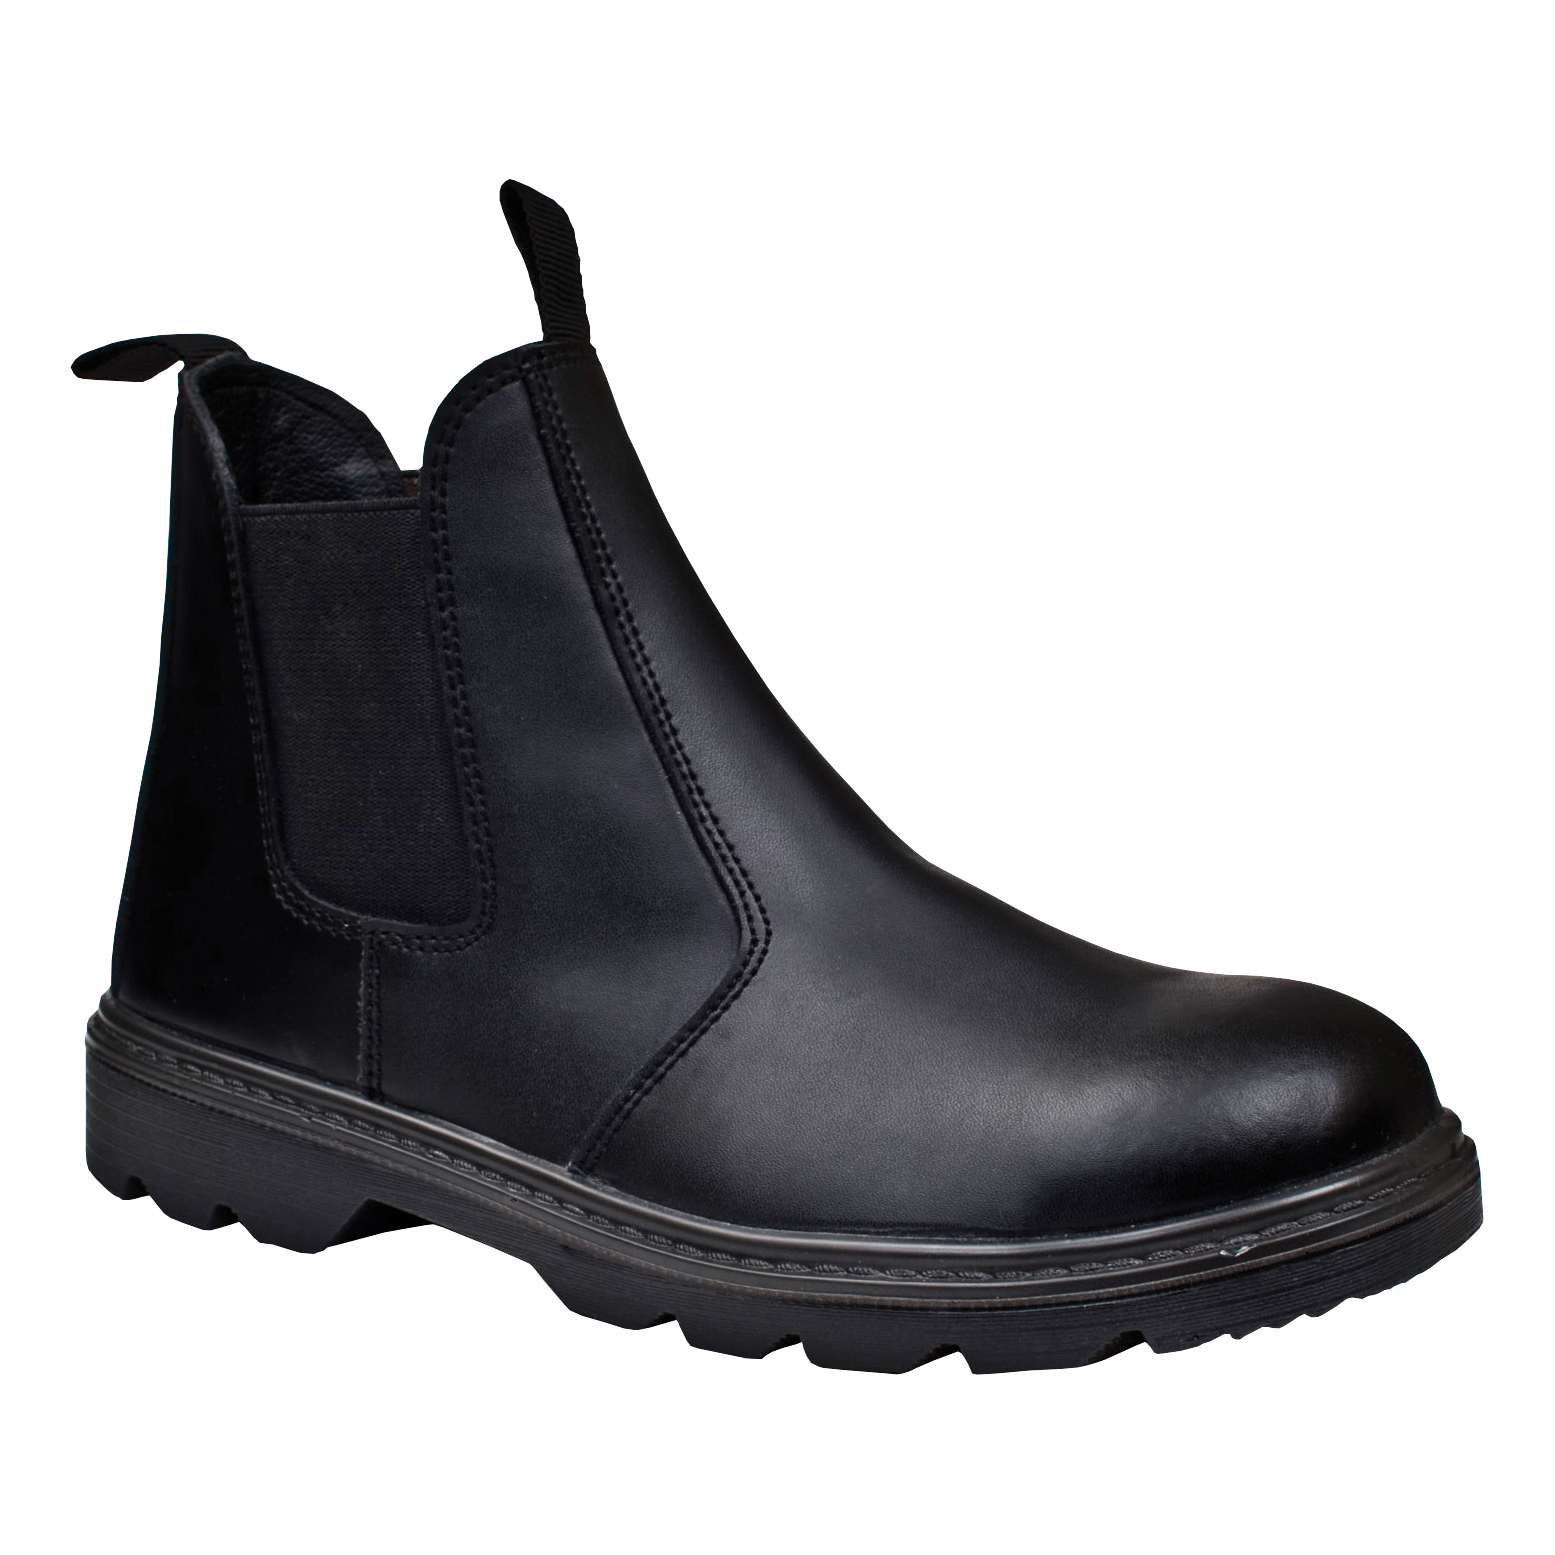 Click Footwear Dealer Boot PU/Leather Steel Toecap Size 8 Black Ref CF16BL08 *Approx 3 Day Leadtime*